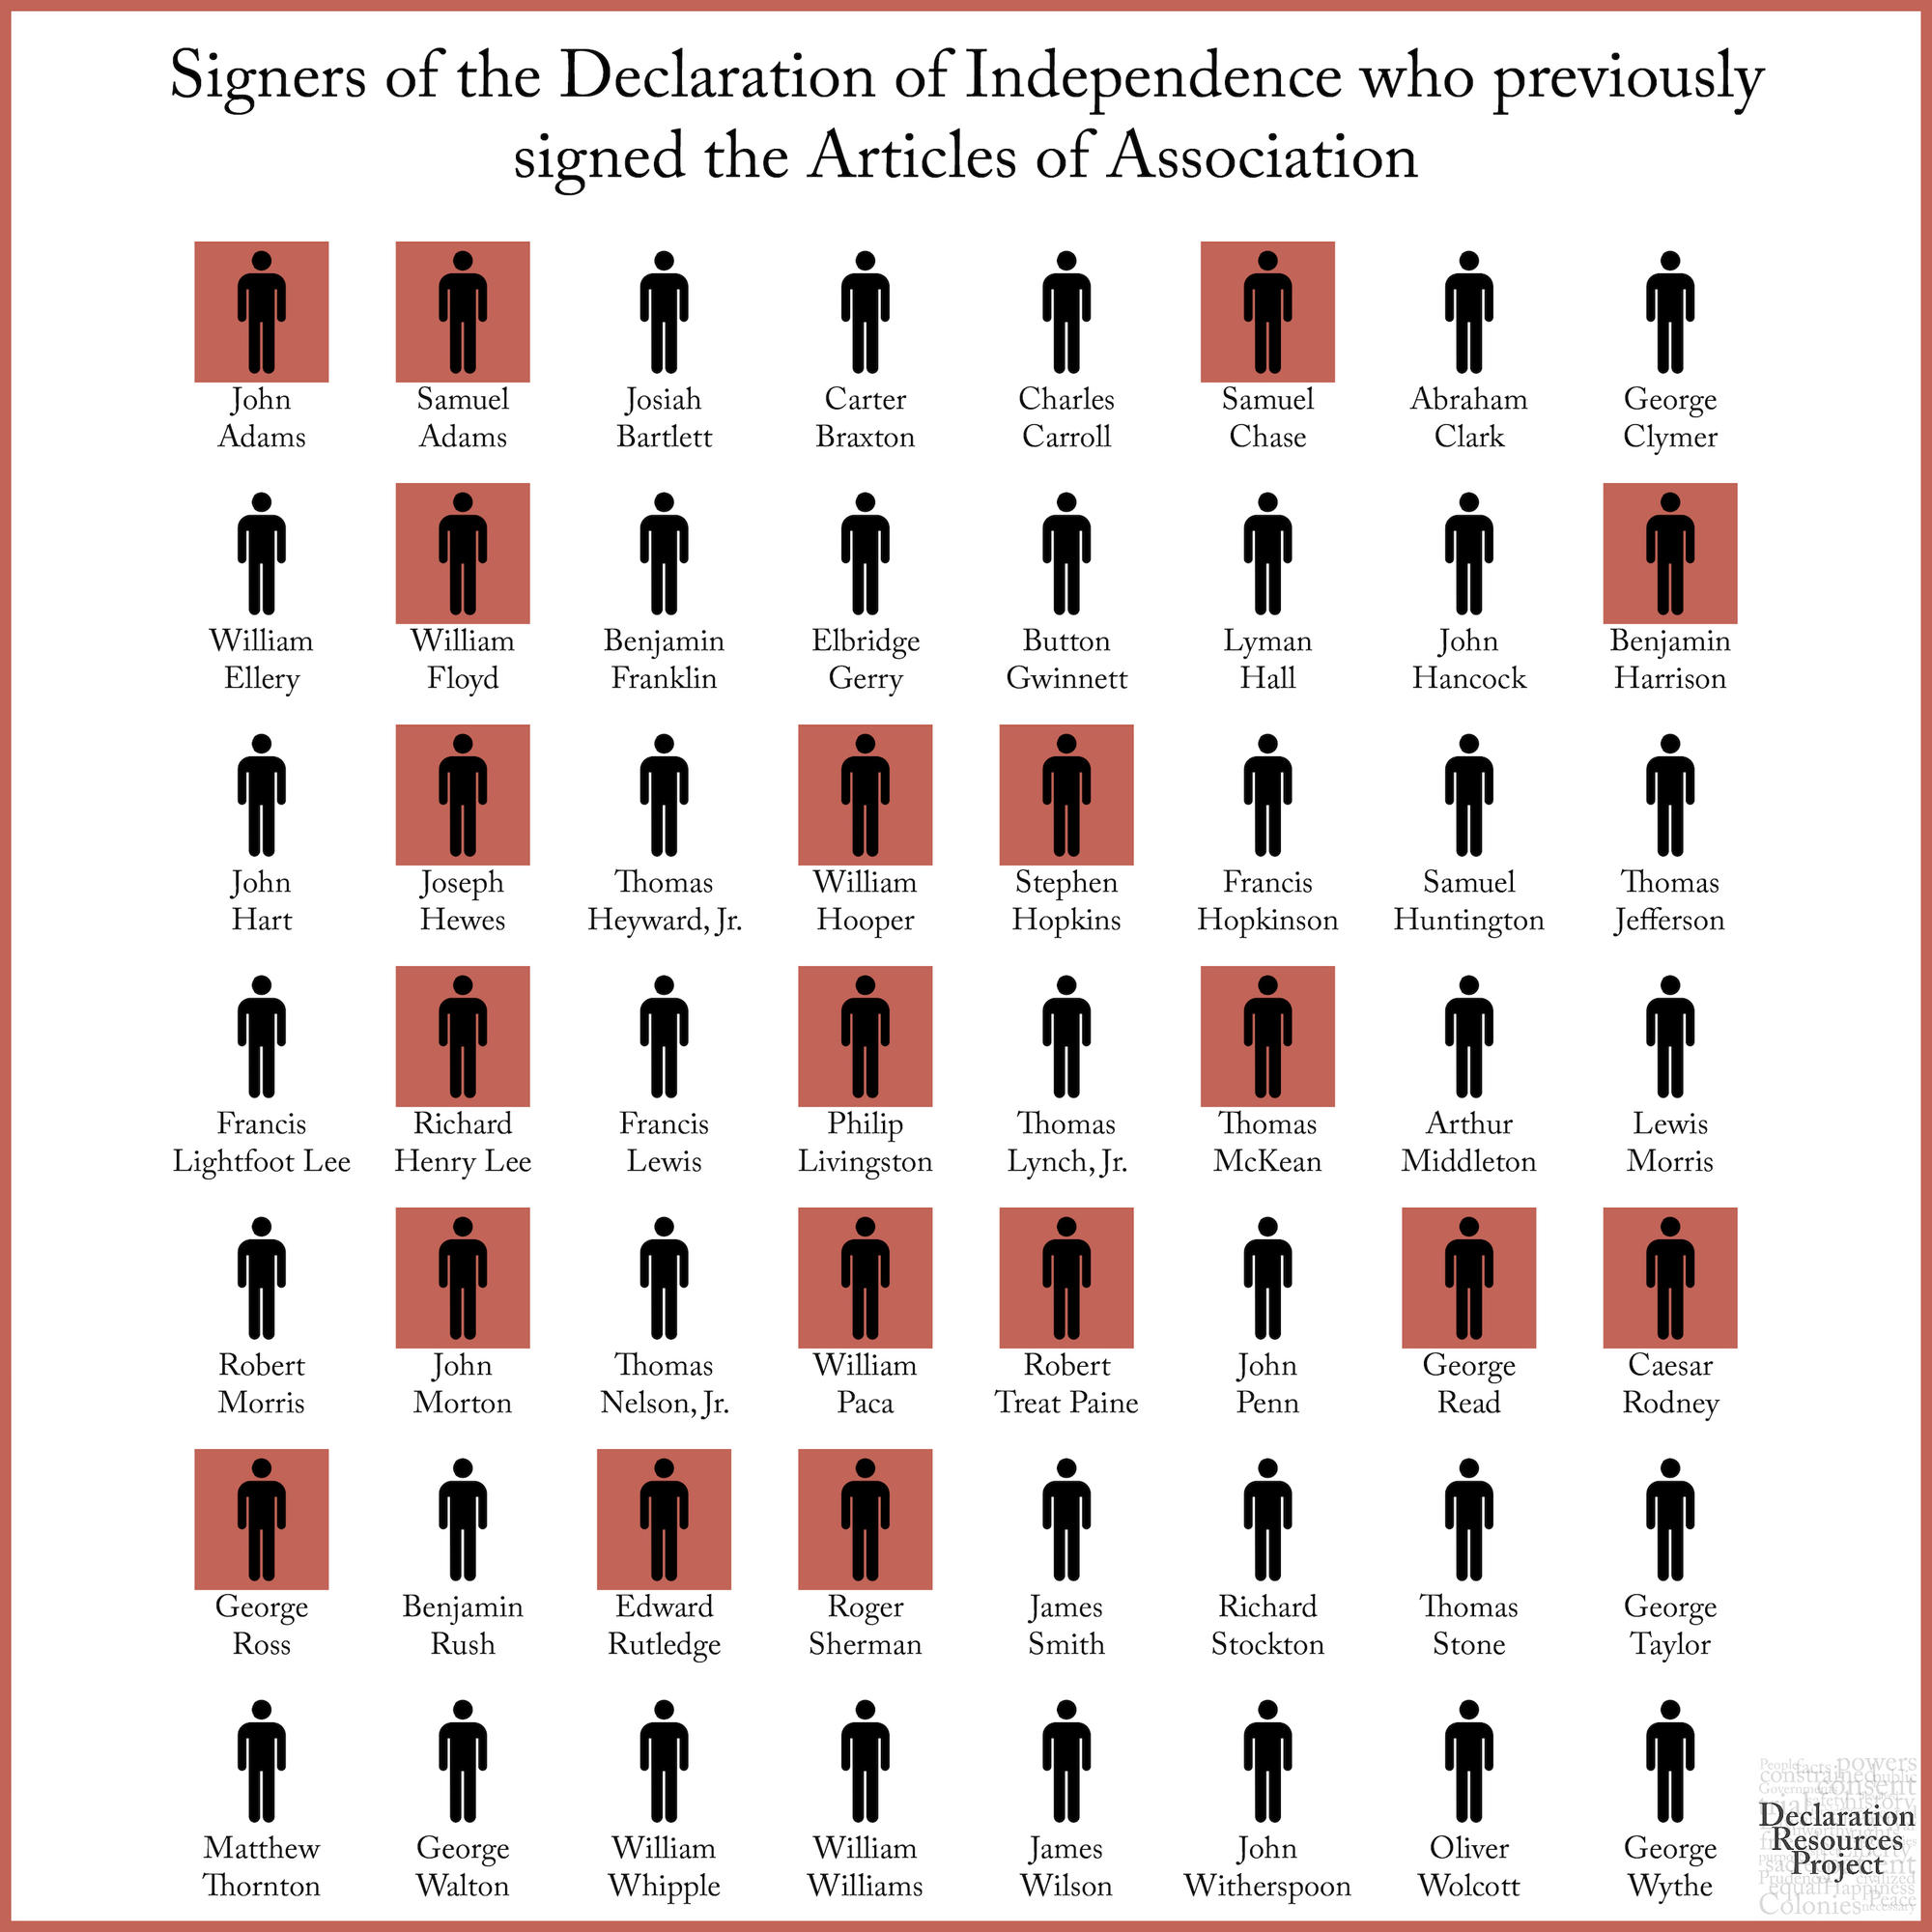 Signers of the Declaration who previously signed Articles of Association